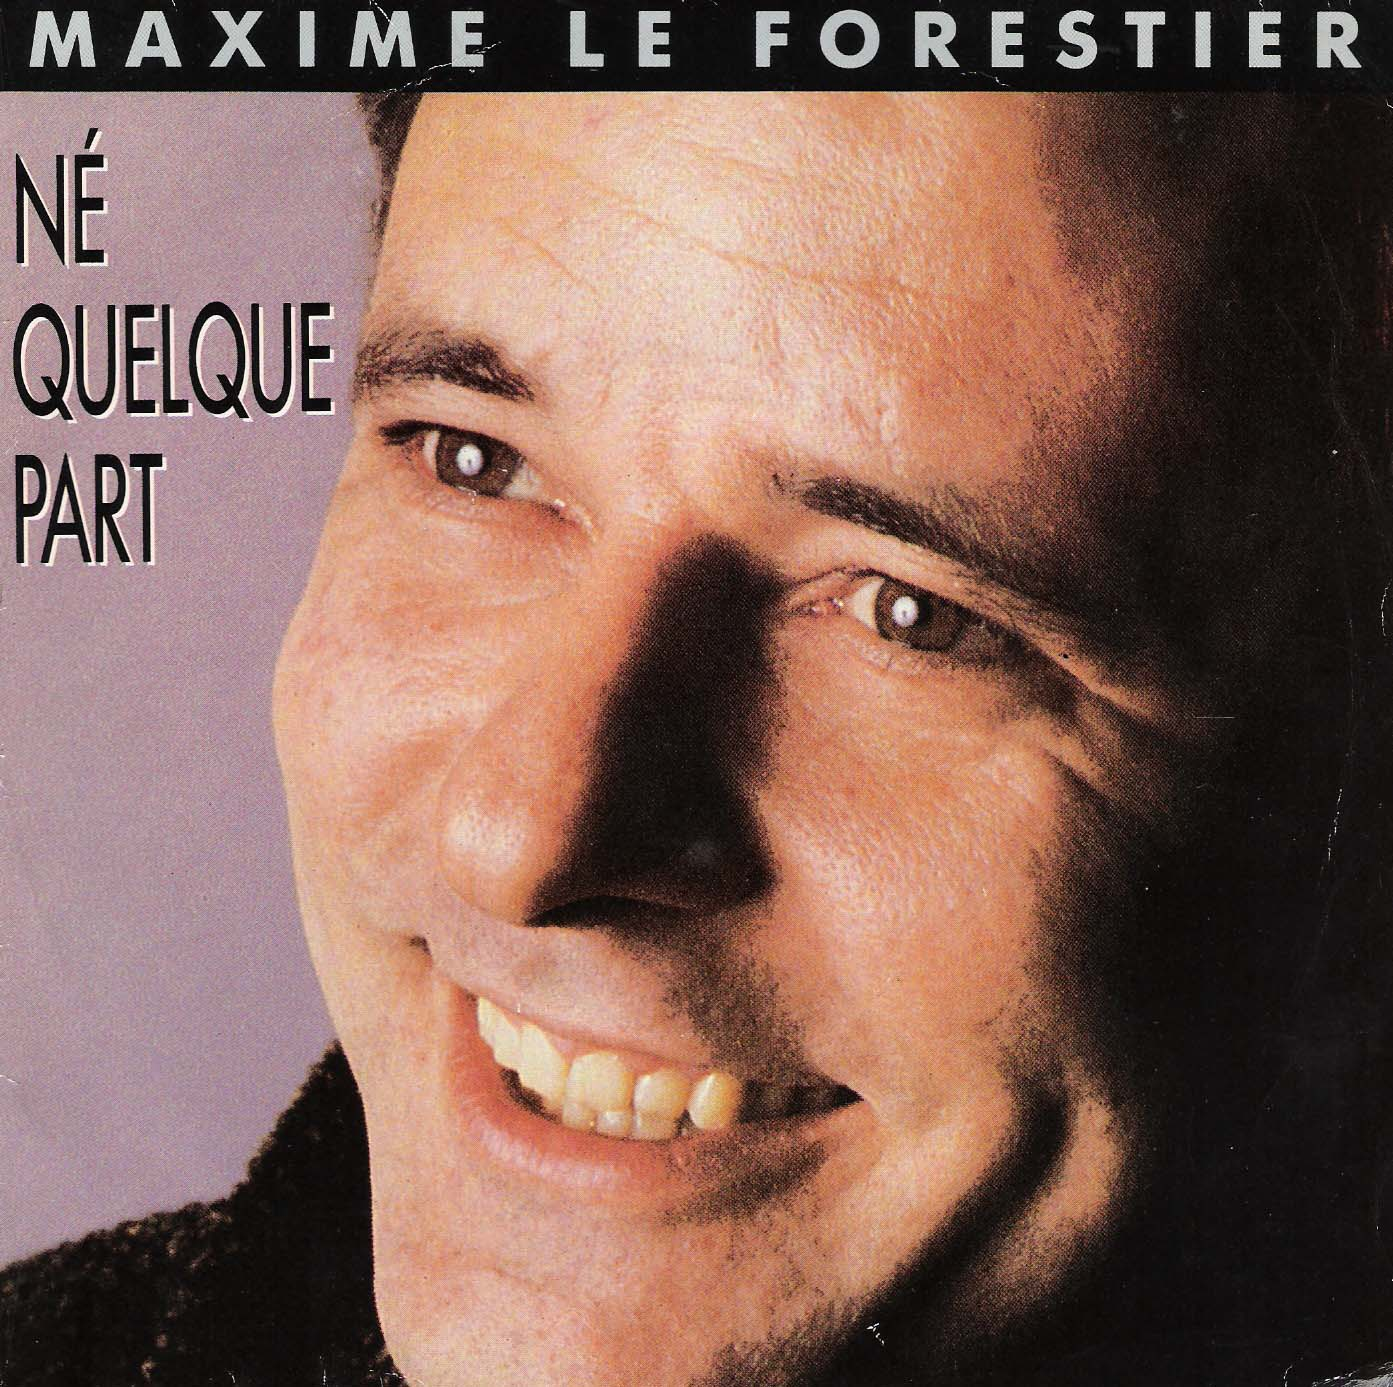 Amis Maxime <b>Le Forestier</b> - Amis%2BMaxime%2BLe%2BForestier0